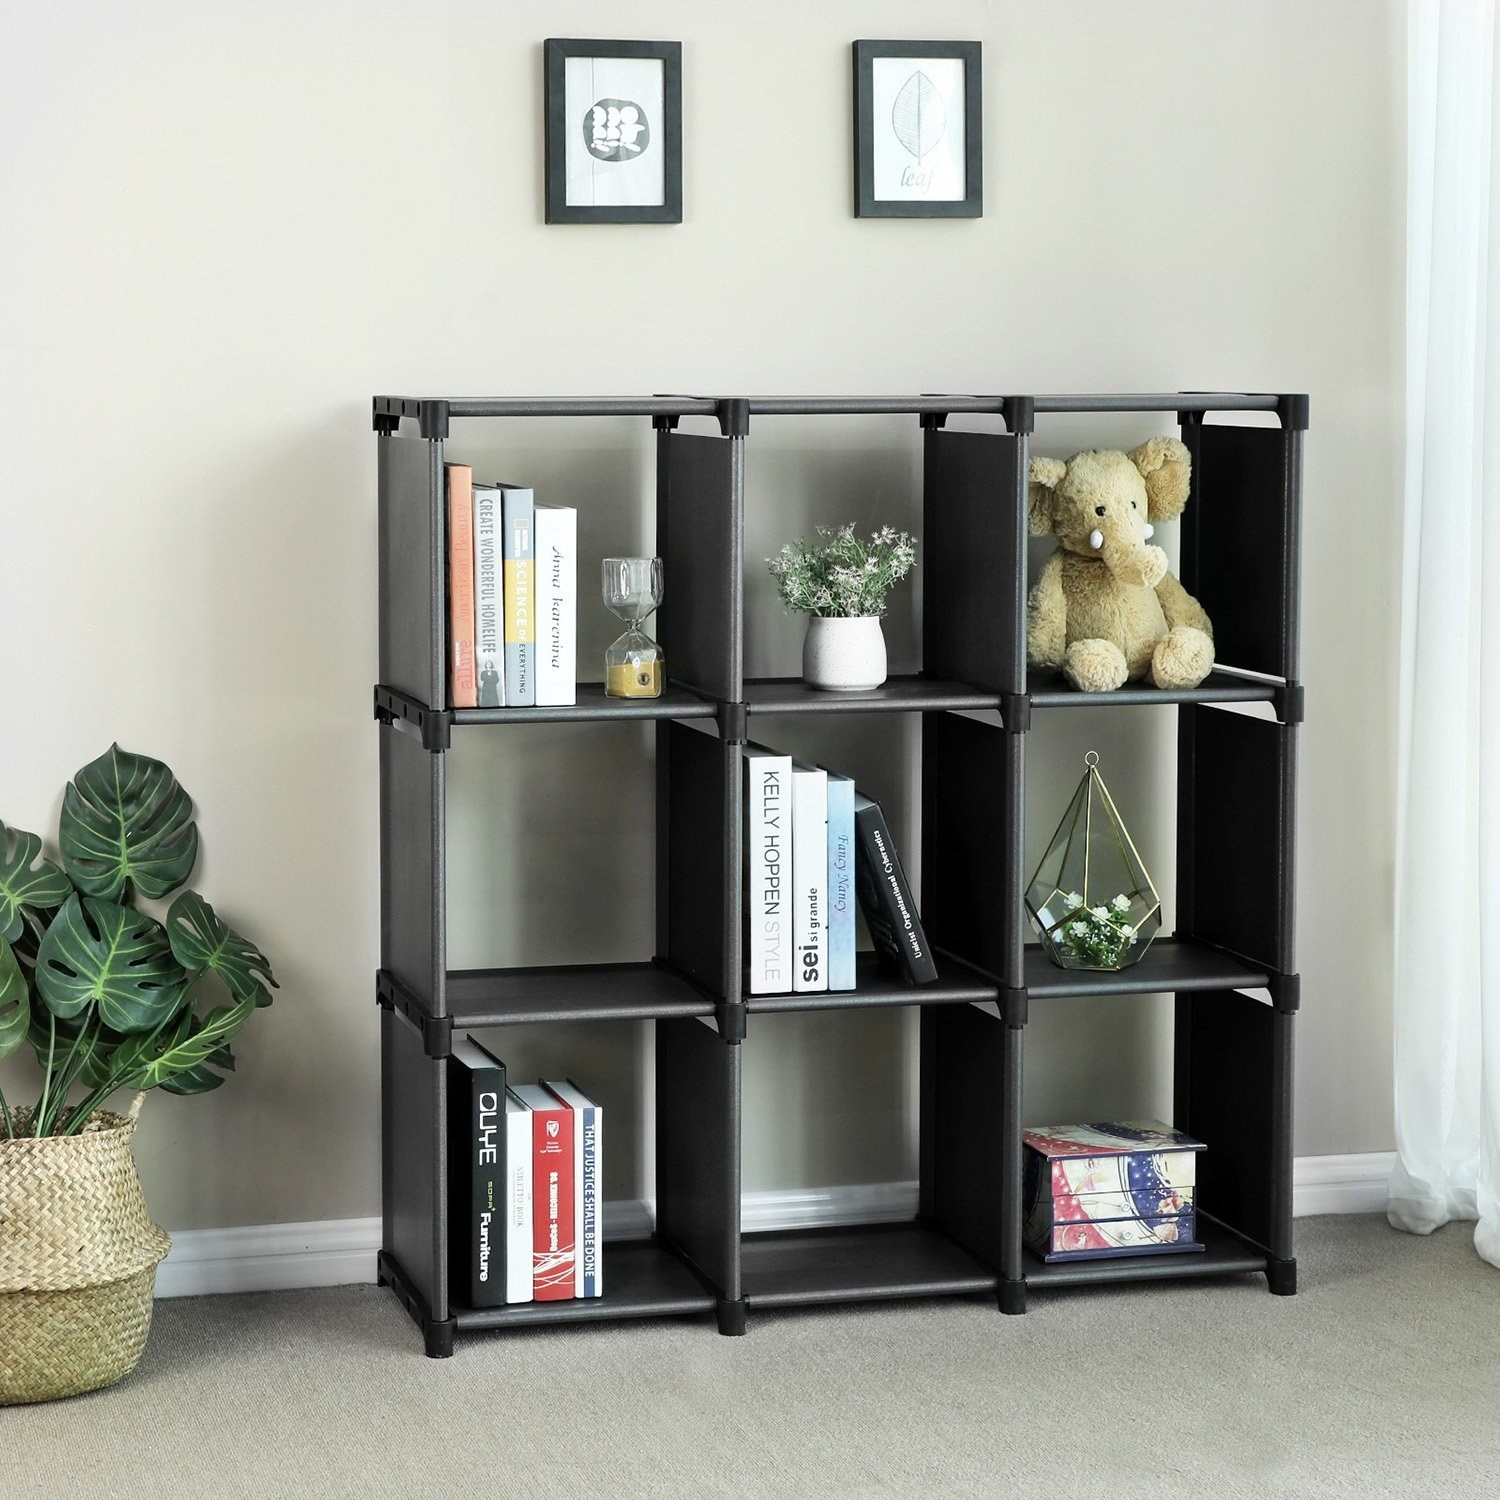 A shelving unit with nine square sections filled with books, plants, and stuffed animals